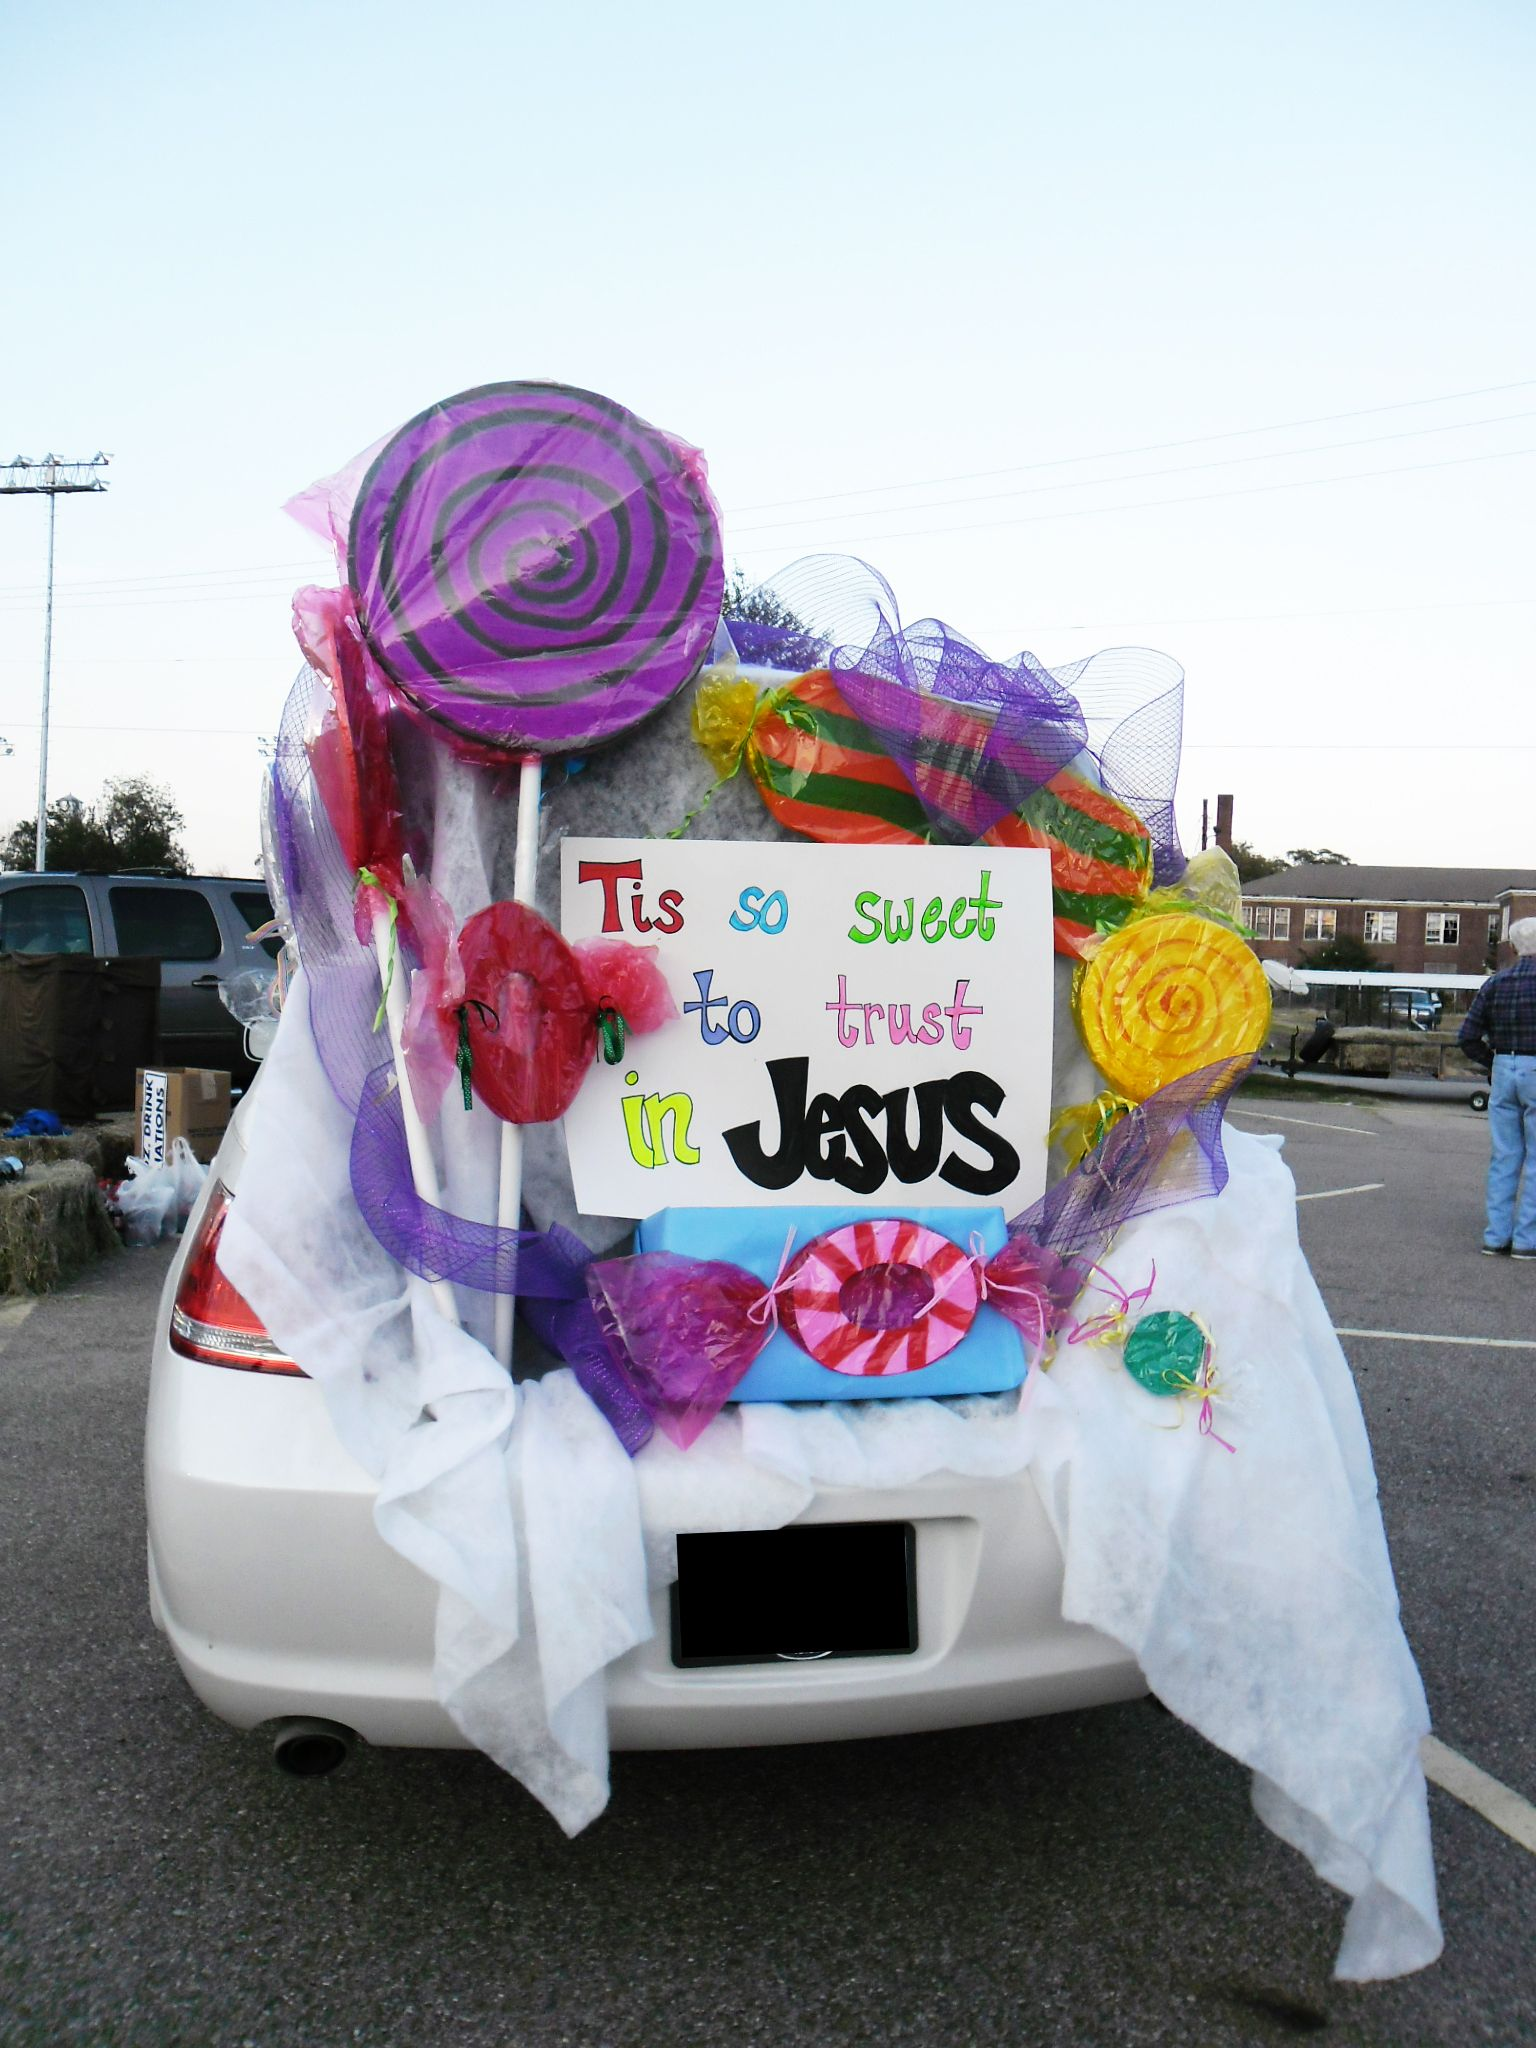 Here are 10 fun ways to decorate your trunk for your